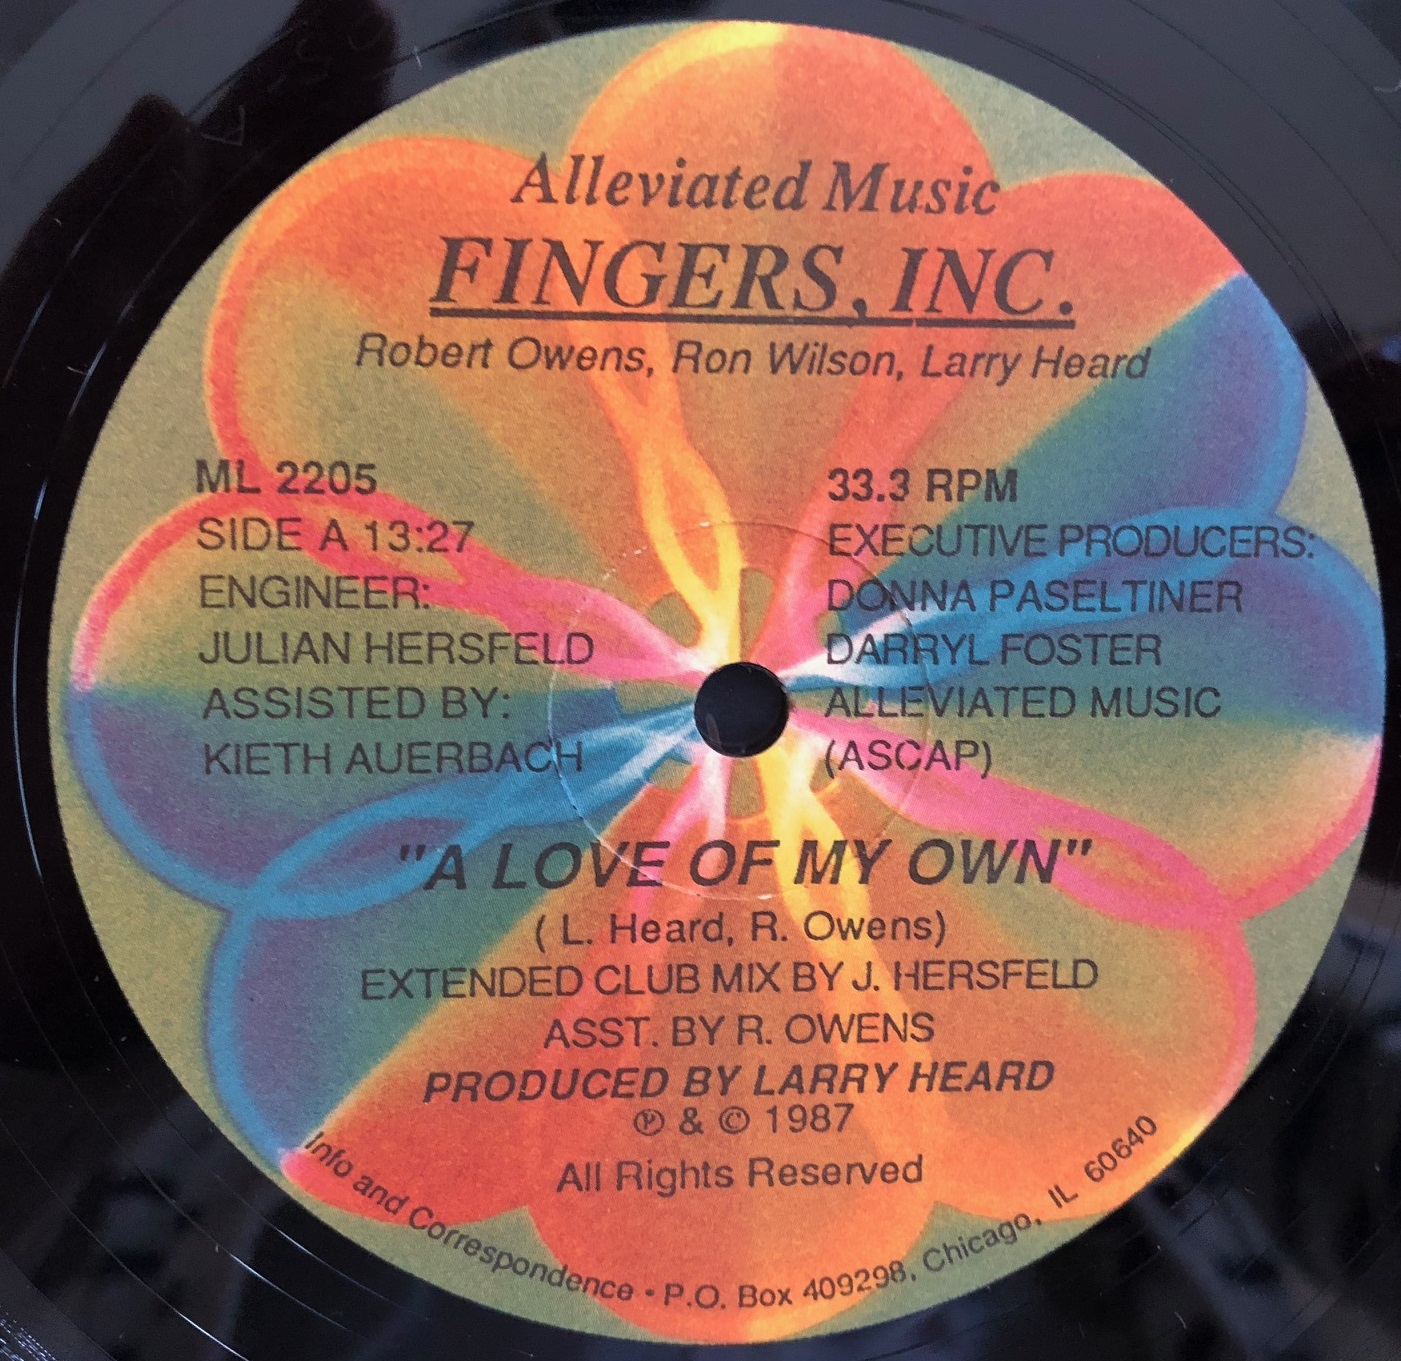 FINGERS, INC. / A LOVE OF MY OWN